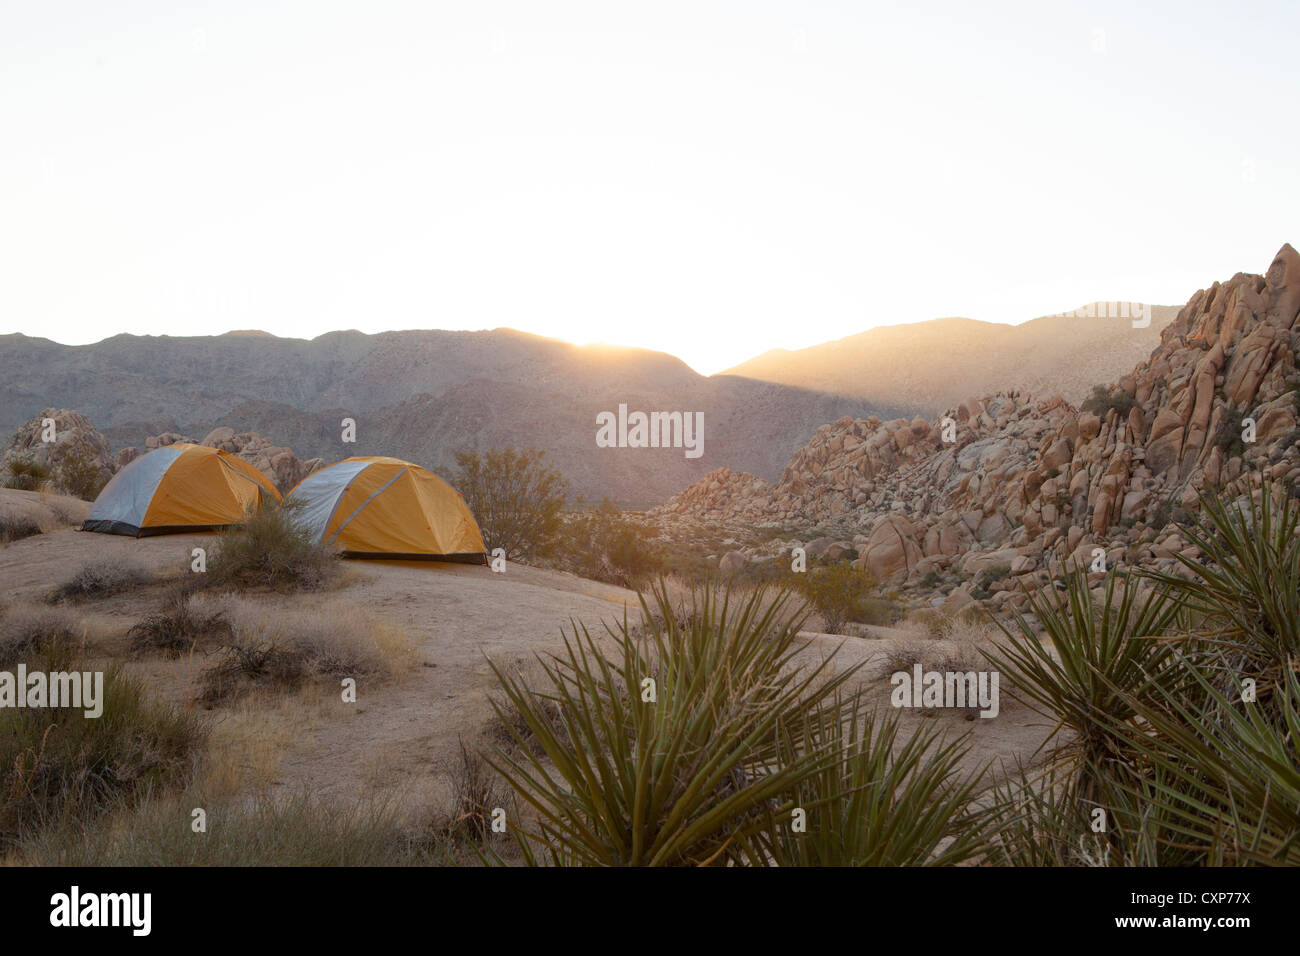 sunrise in Joshua tree with two tents set up. - Stock Image